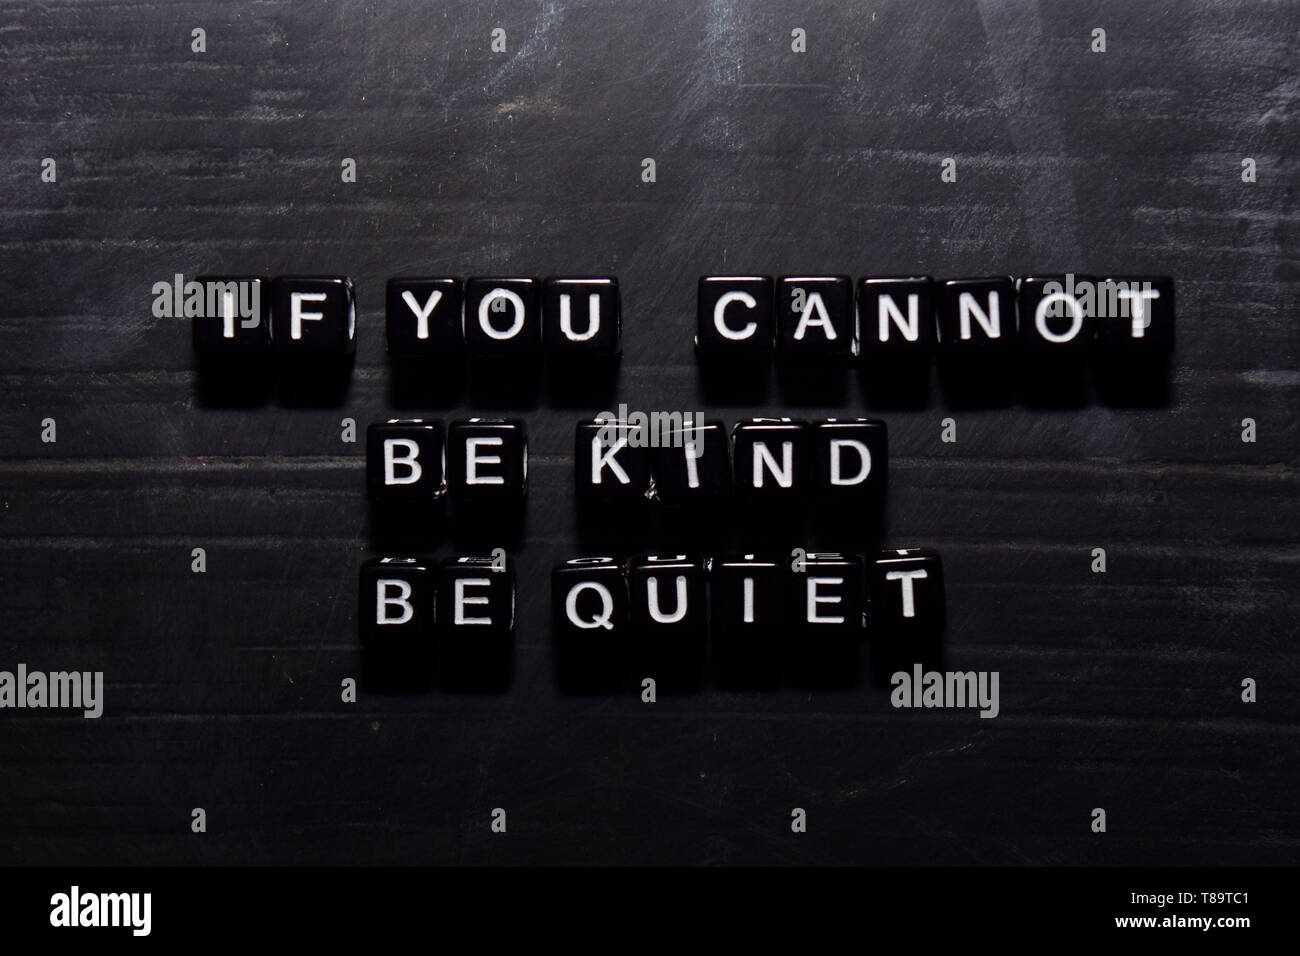 If you can't. Be Kind. Be Quiet on wooden blocks. Education, Motivation and inspiration concept - Stock Image